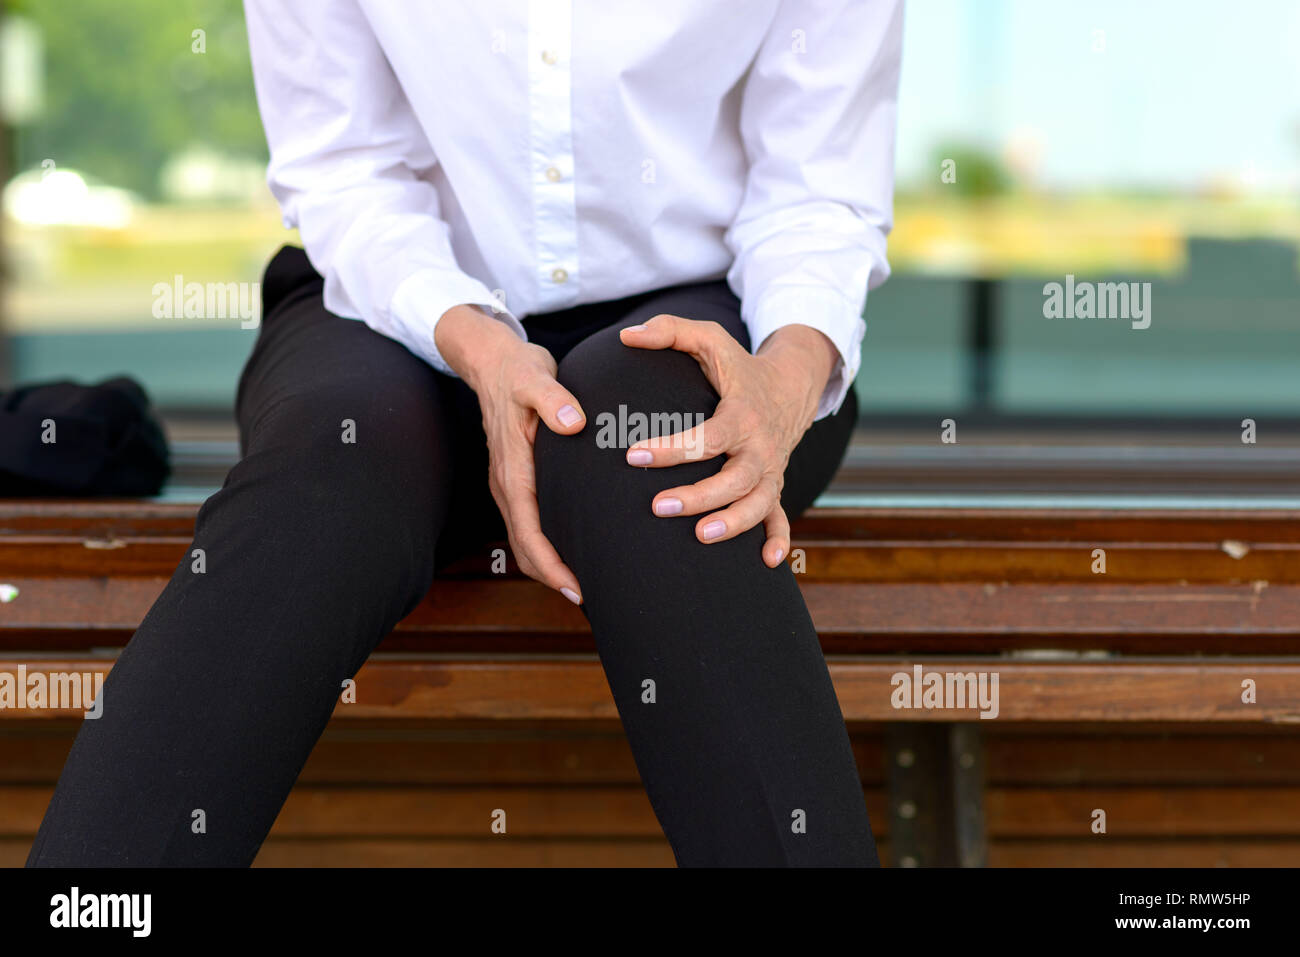 Businesswoman is holding her aching knee while sitting on a bench - Stock Image